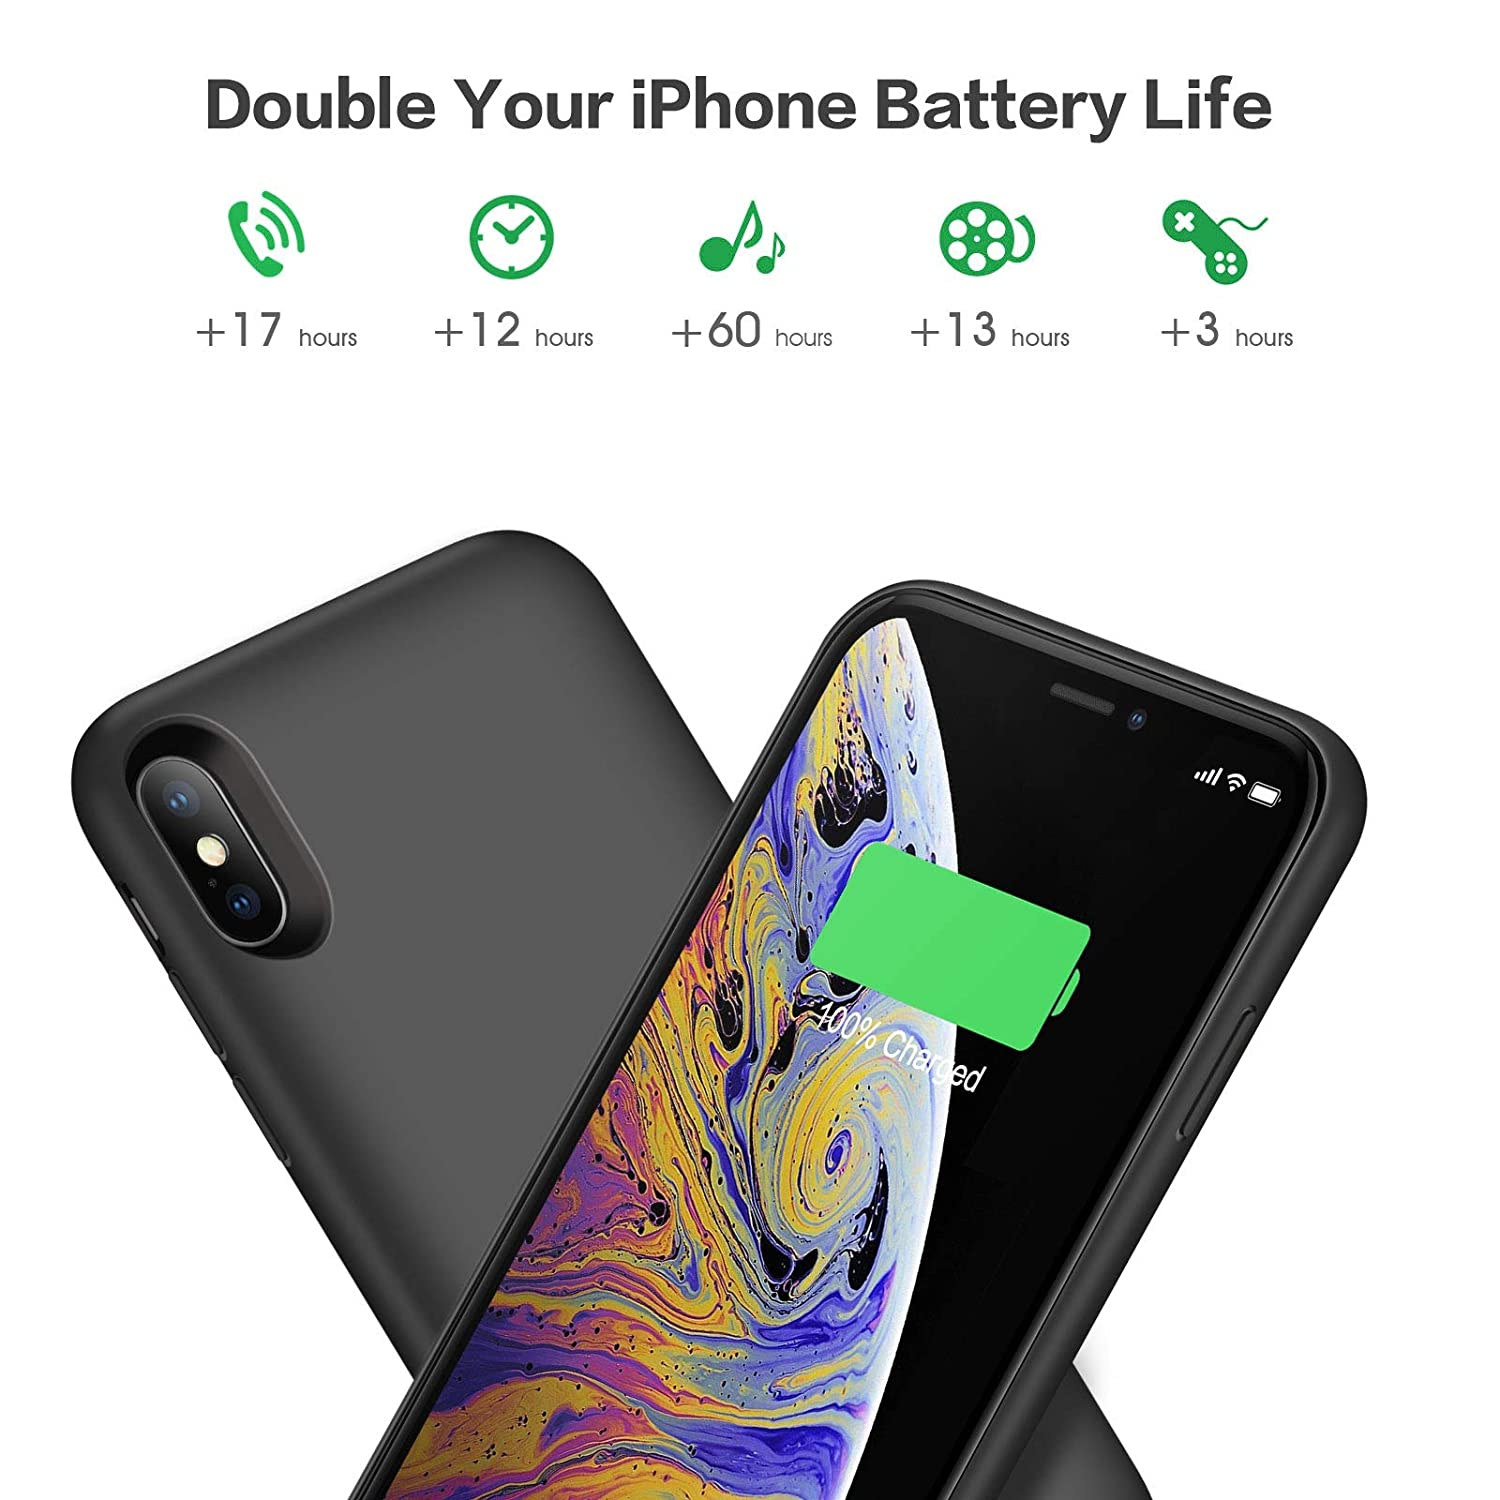 Battery Case for iPhone X/Xs/10 6500mAh, iPosible Portable Charging Case  Rechargeable Extended Battery Pack for iPhone X/Xs(5 8 inch) Protective